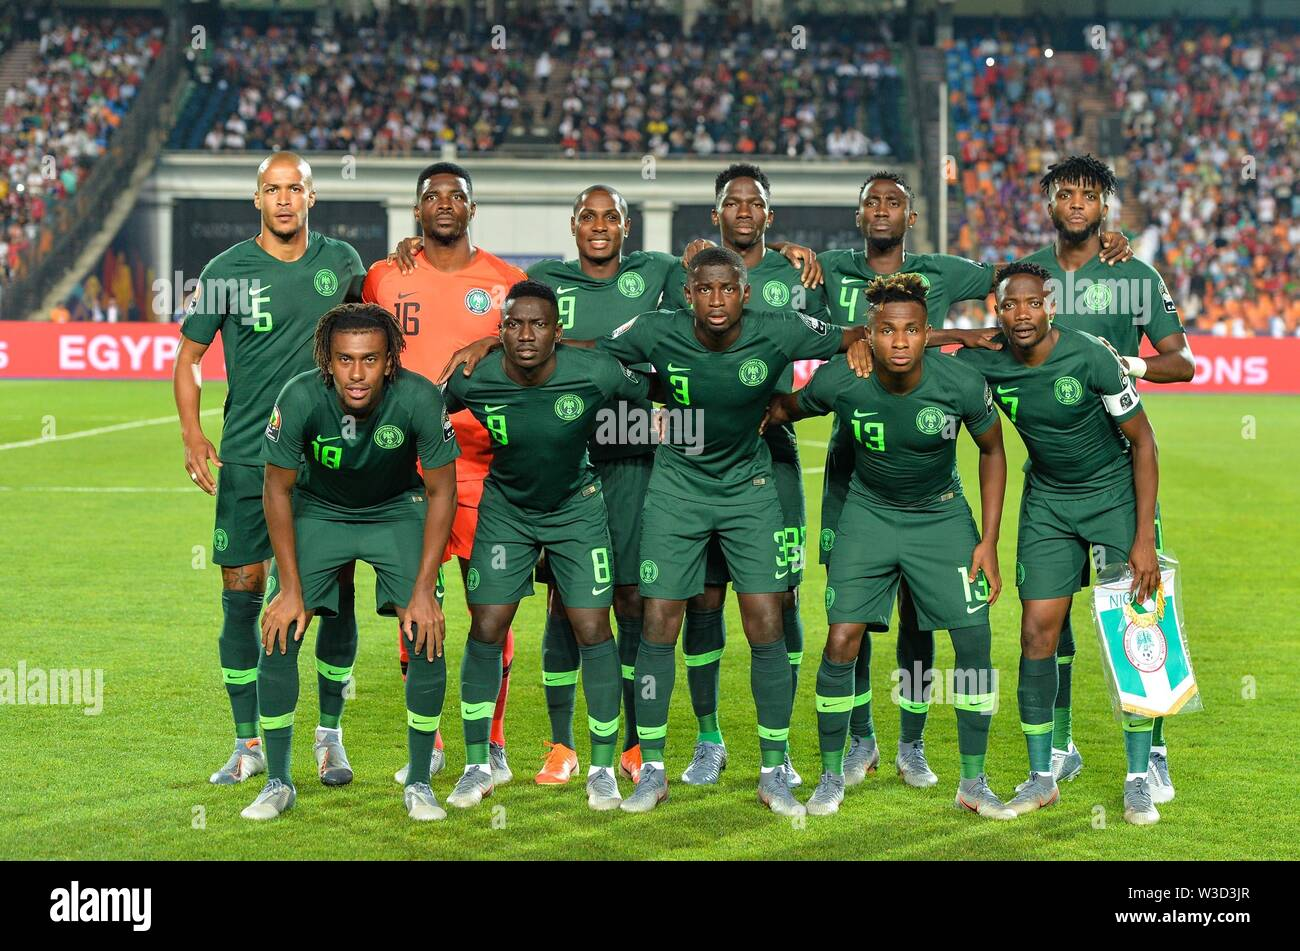 Cairo. 14th July, 2019. Players of Nigeria line up before the semifinal match between Algeria and Nigeria at the 2019 Africa Cup of Nations in Cairo, Egypt on July 14, 2019. Credit: Li Yan/Xinhua/Alamy Live News - Stock Image